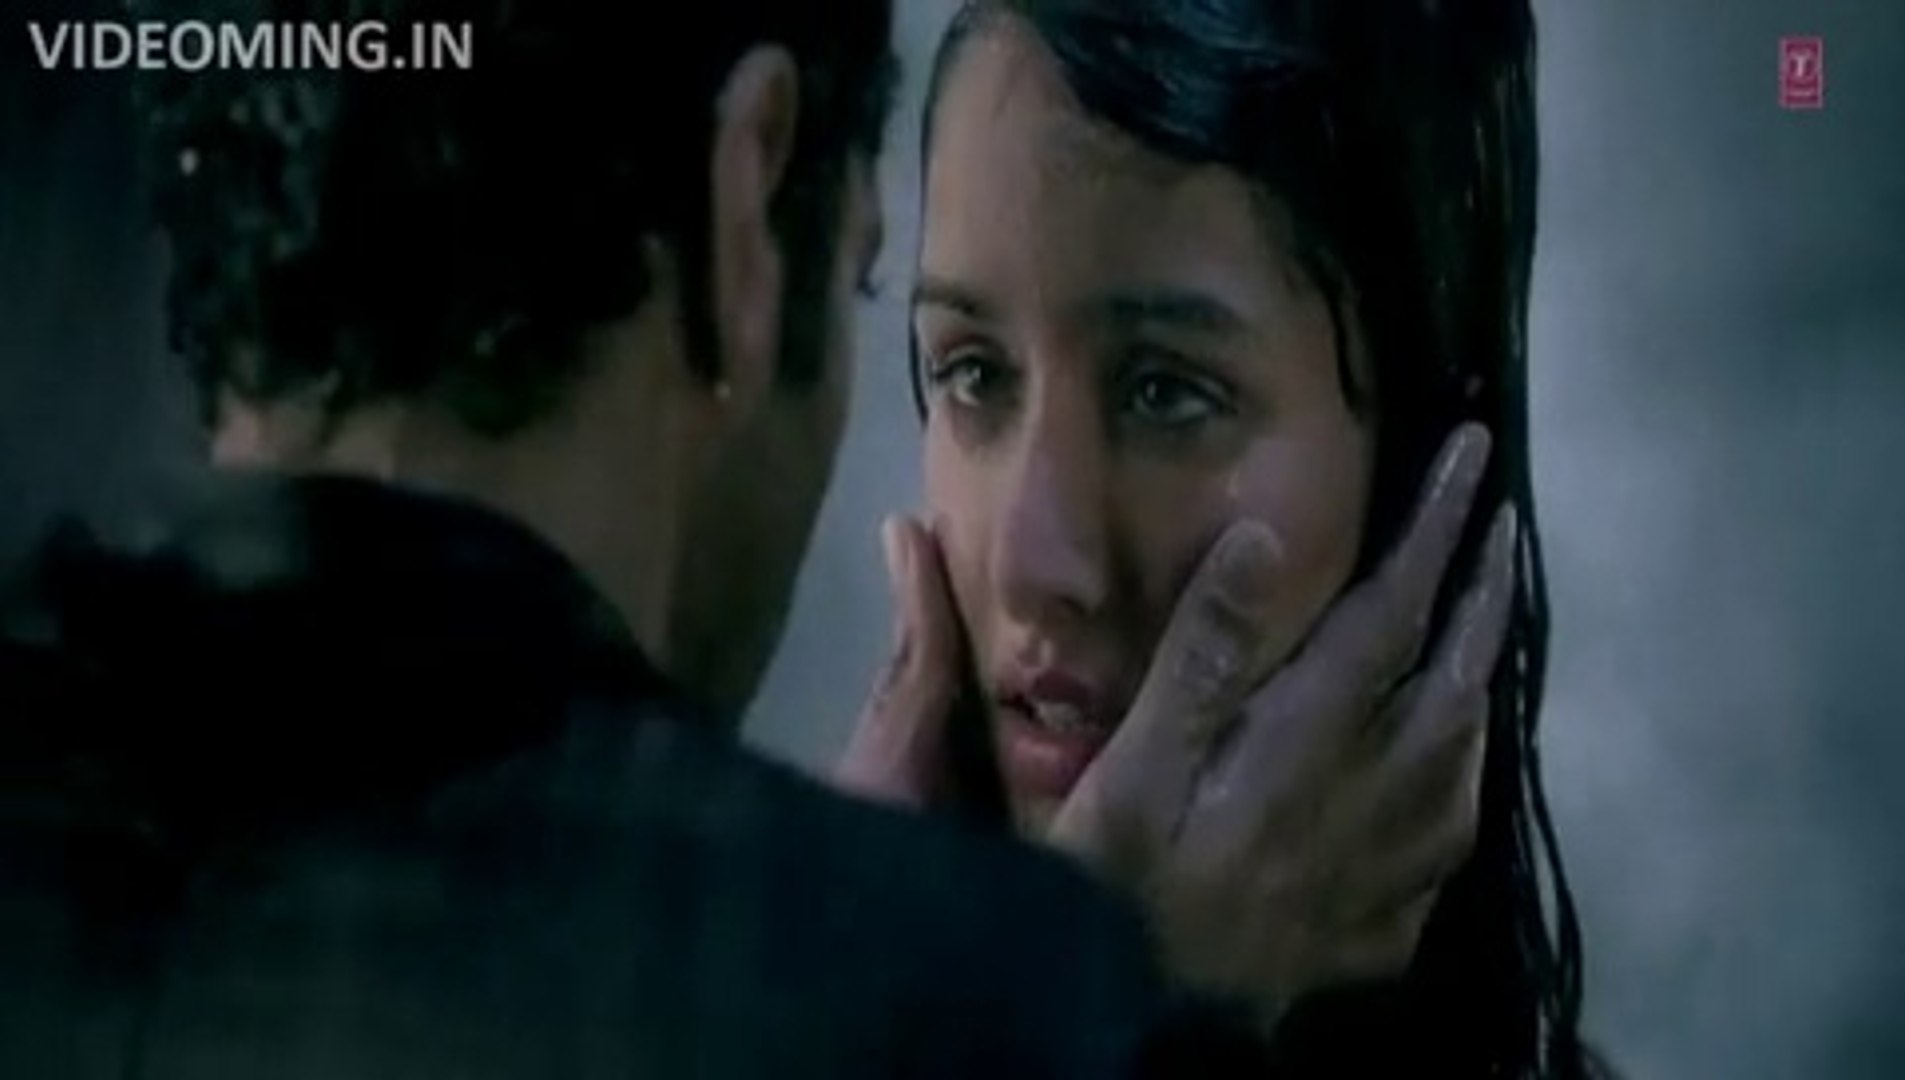 aashiqui 2 video songs hd 1080p bluray free download